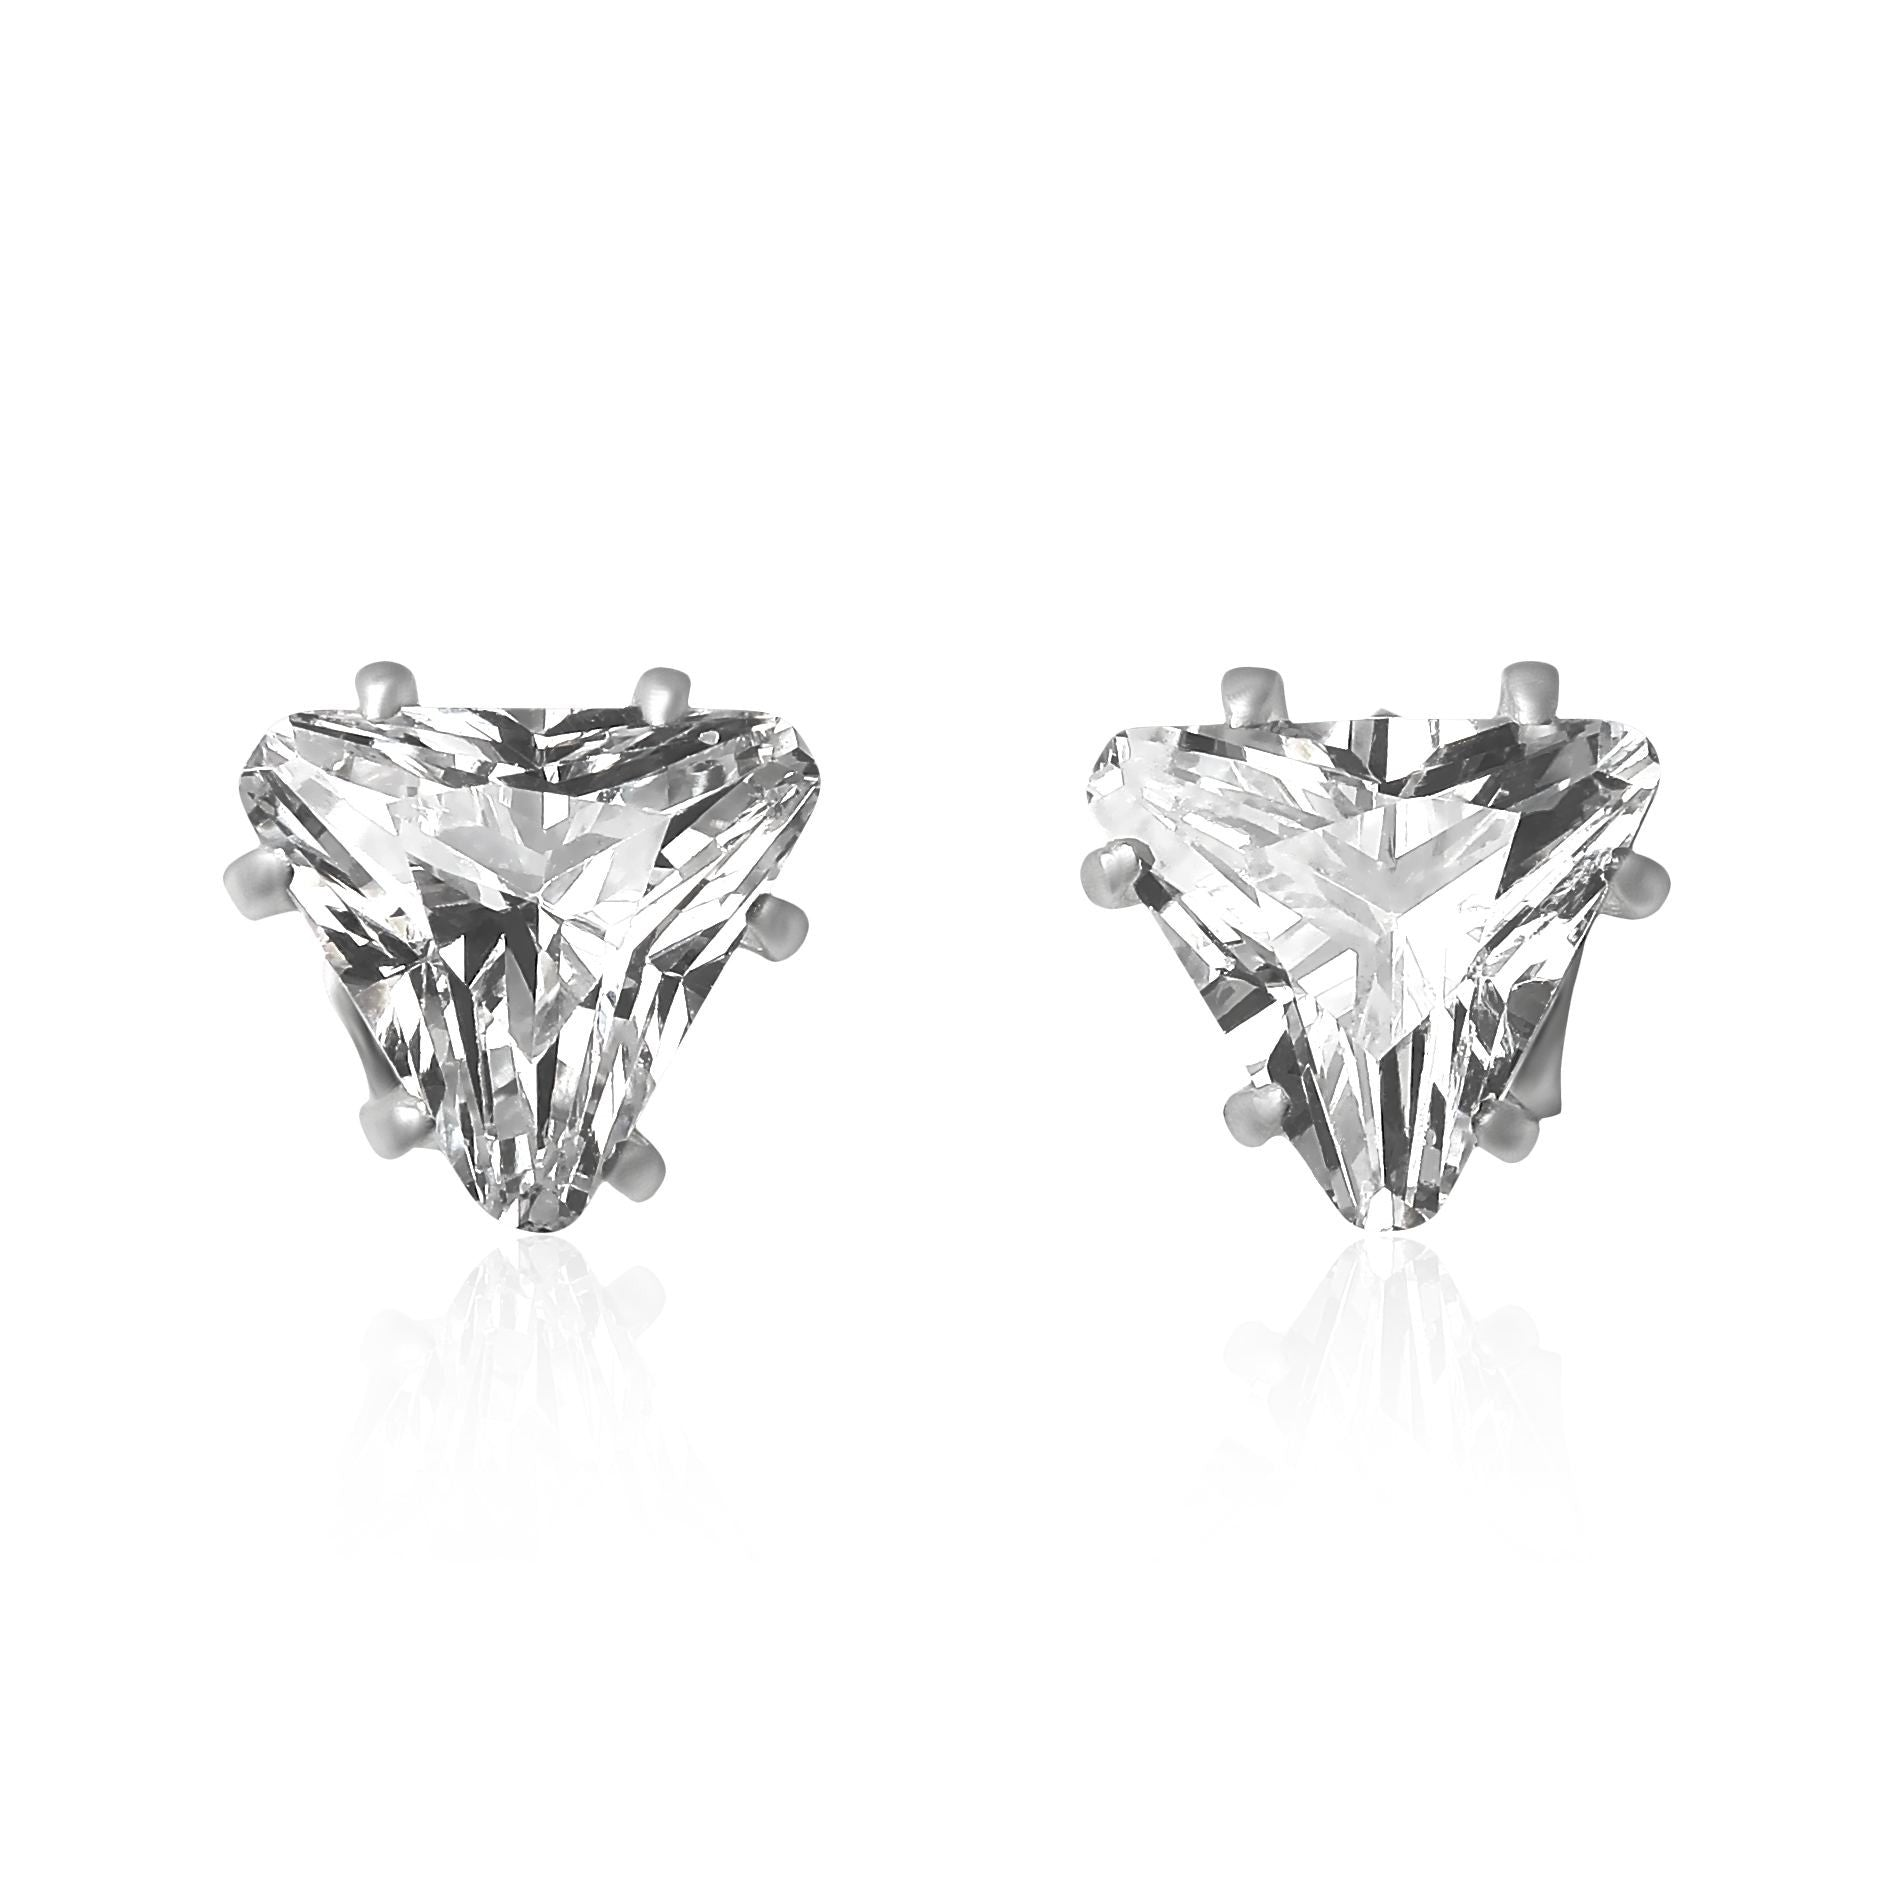 EZ-2270 Triangle CZ Stud Earrings 5mm | Teeda